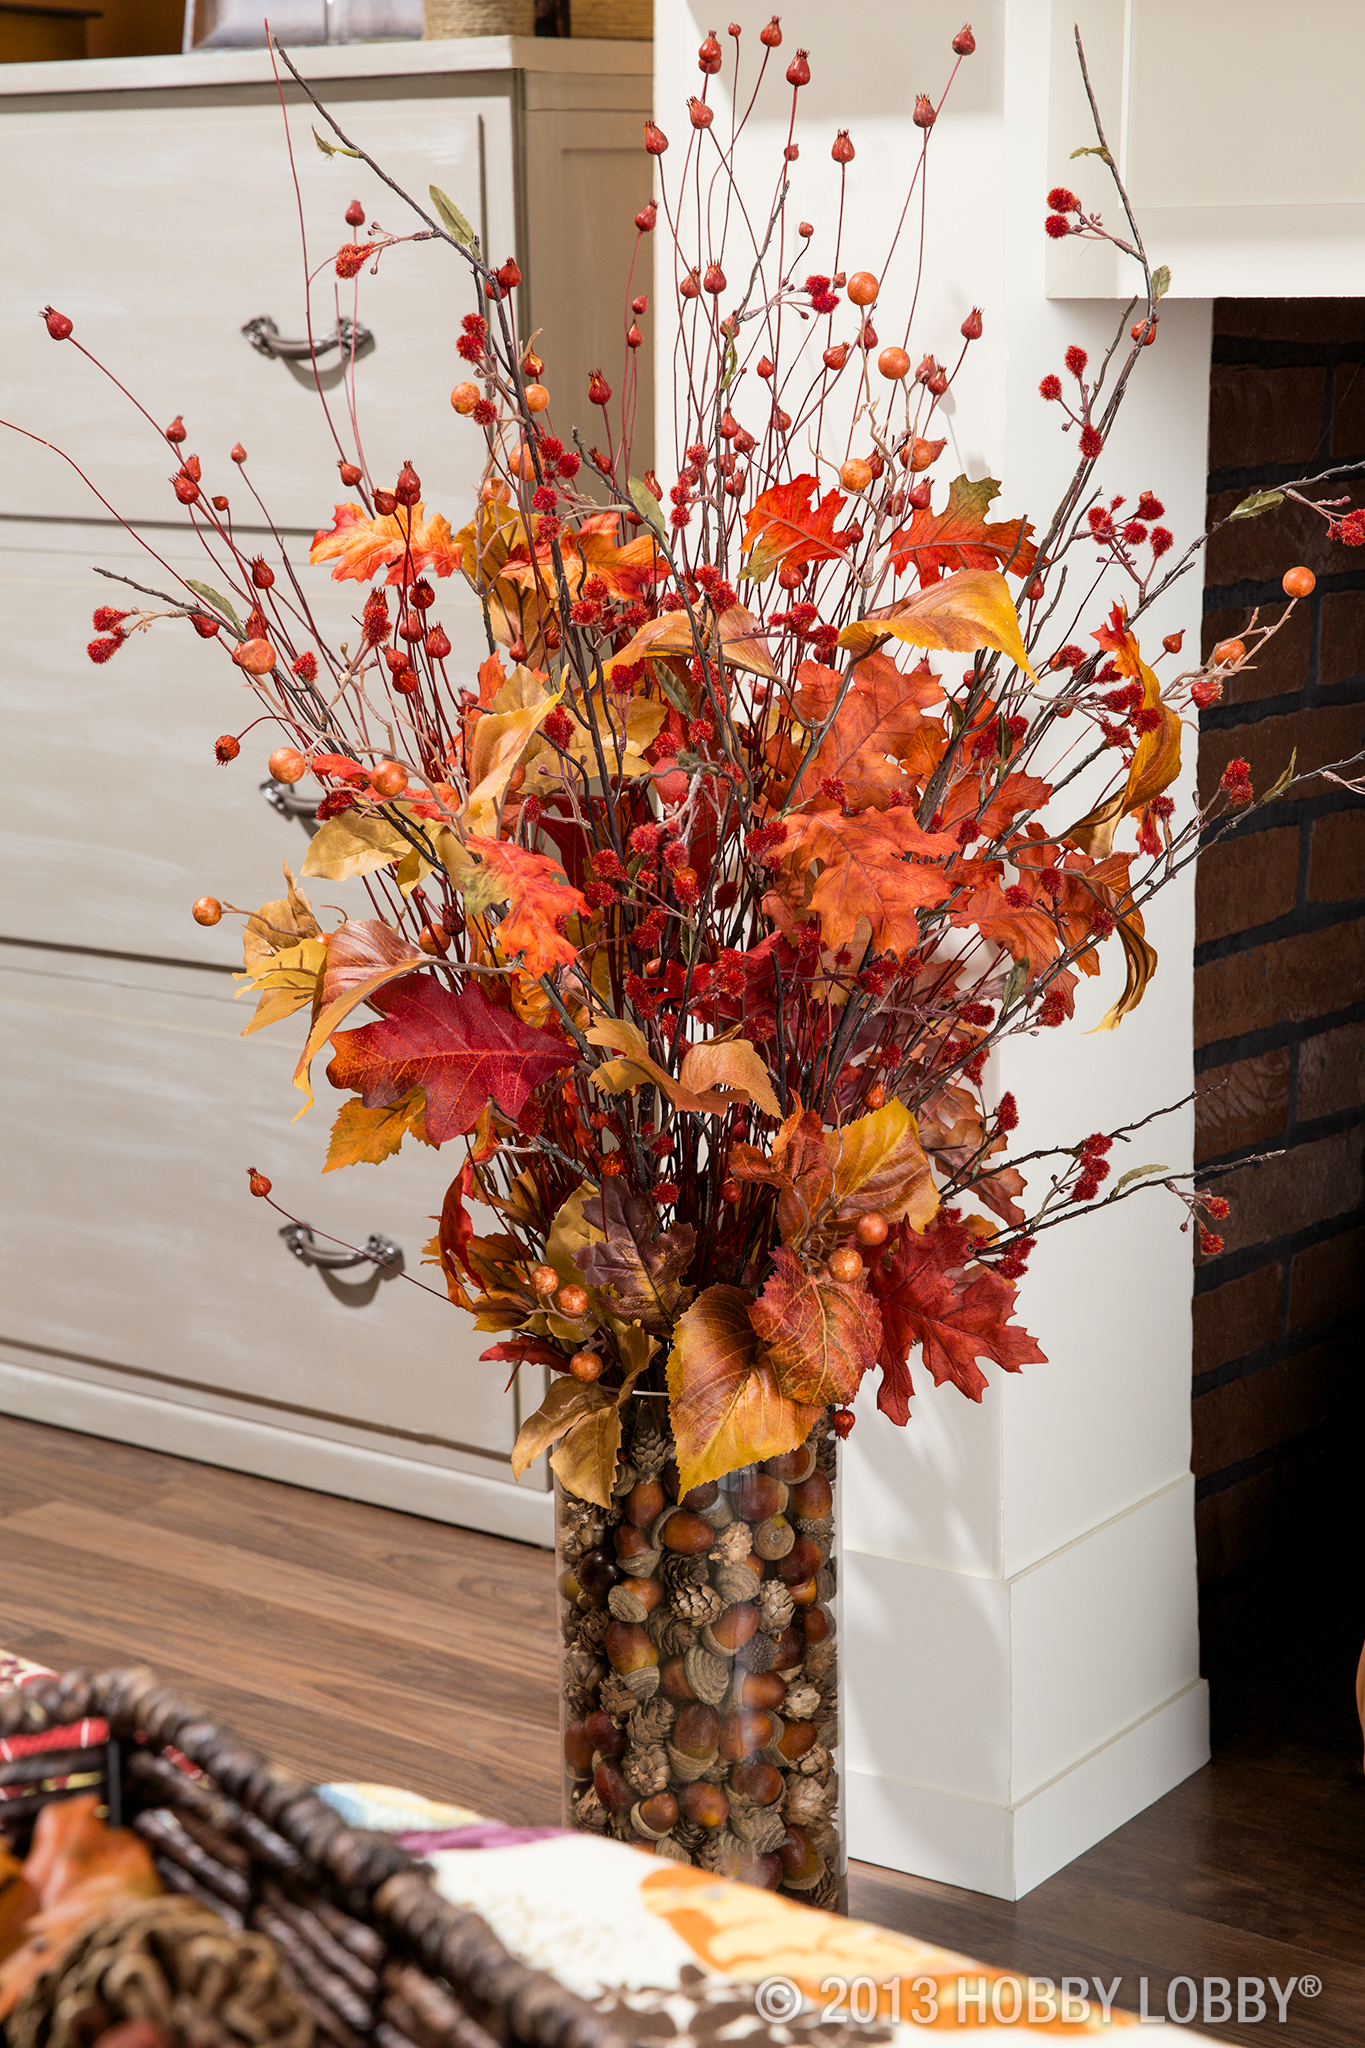 Use faux-floral stems for a flower arrangement that will last all the way through the chilly days of Fall and Winter and straight